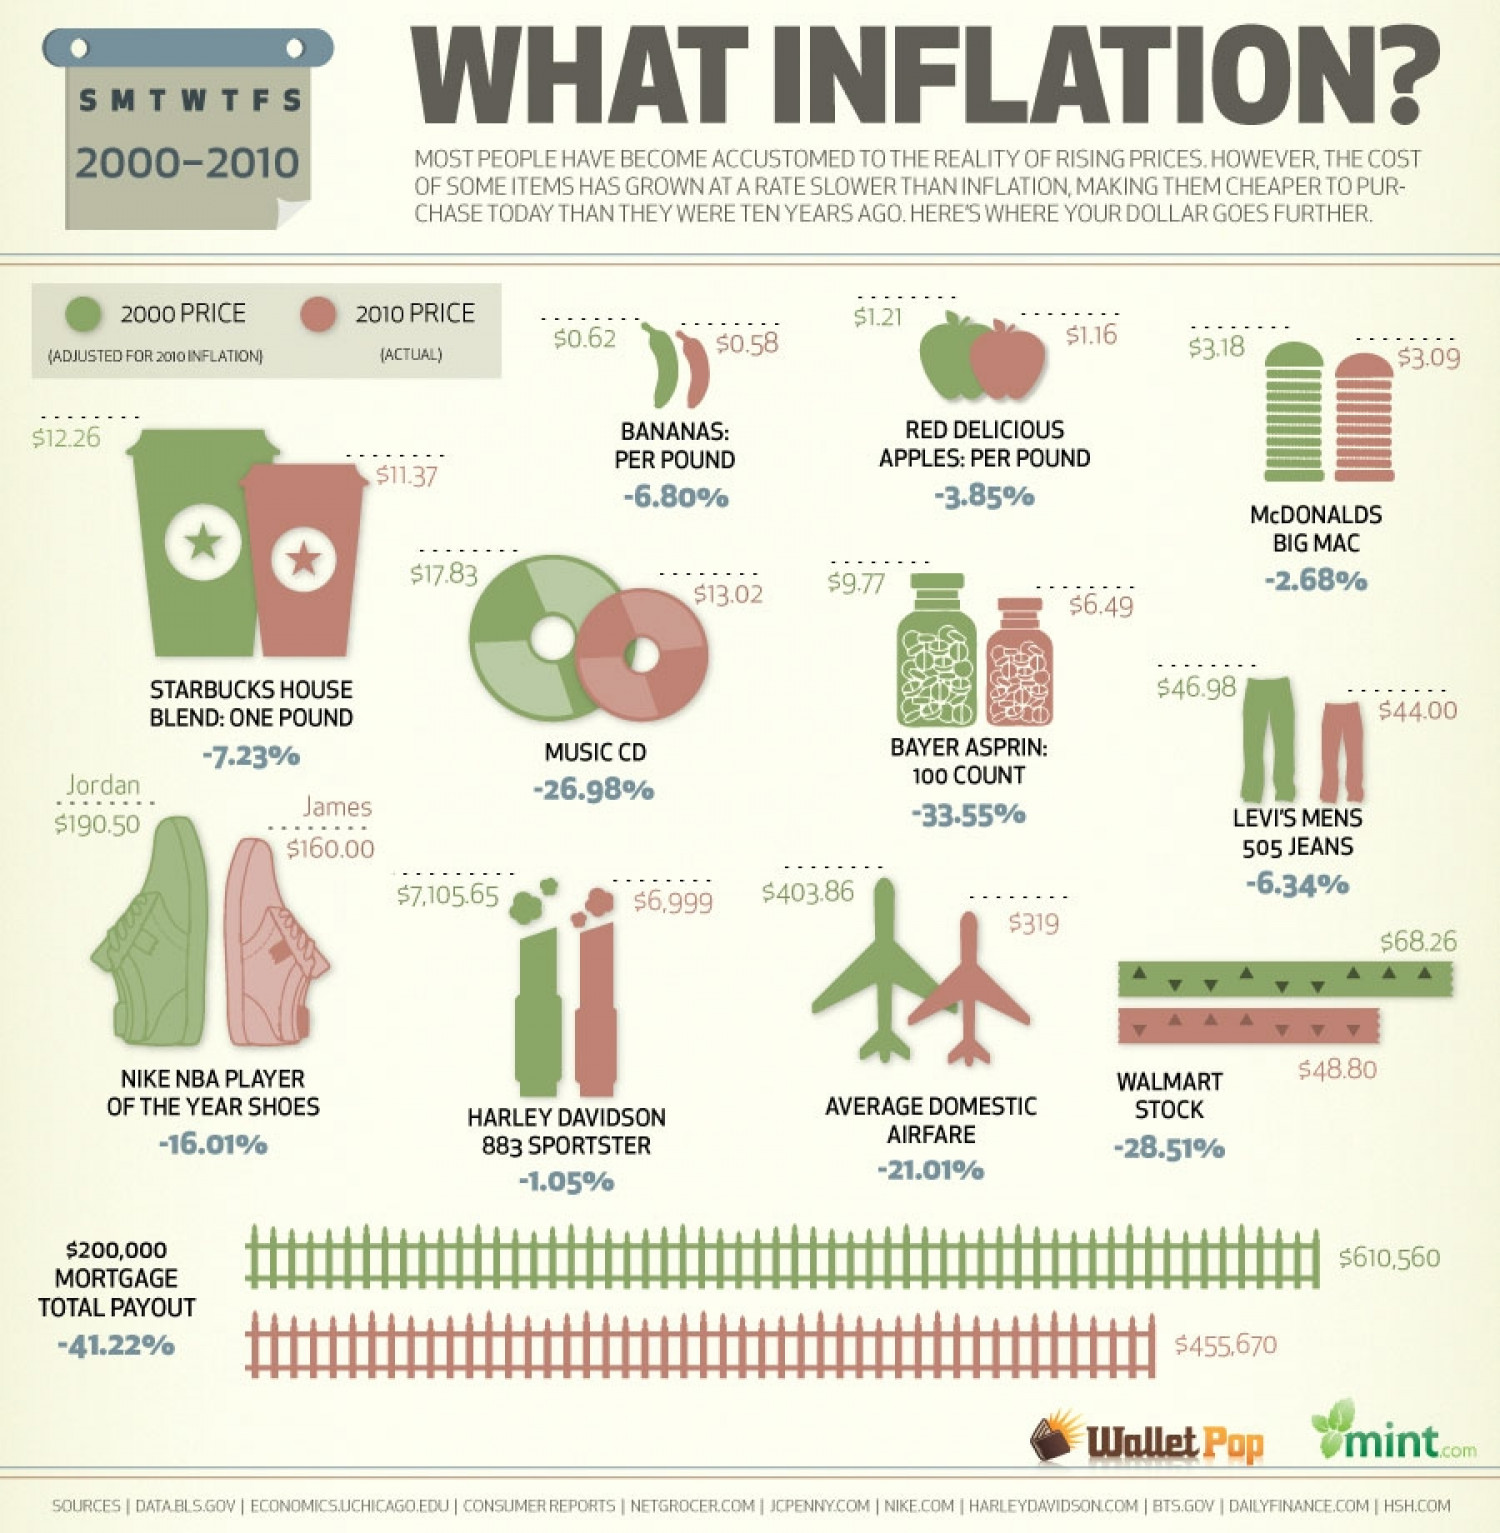 What Inflation? Infographic